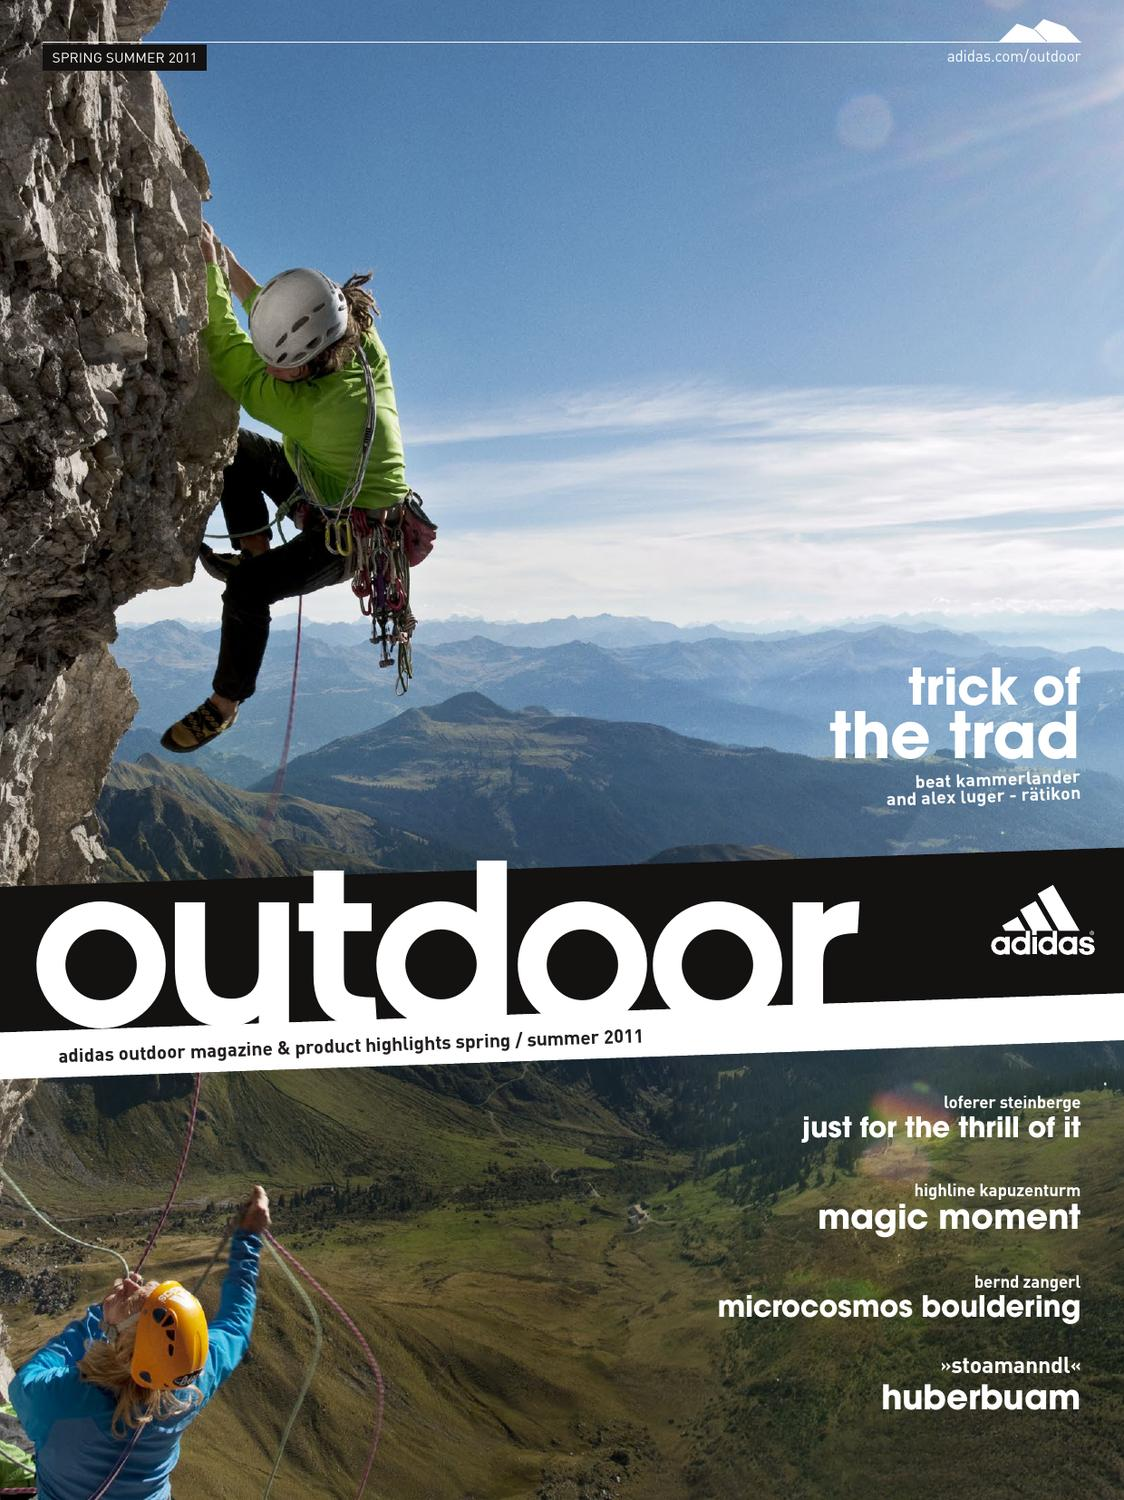 A GOOD ALL ROUNDER FOR MOUNTAIN SPORTS: THE ADIDAS TERREX